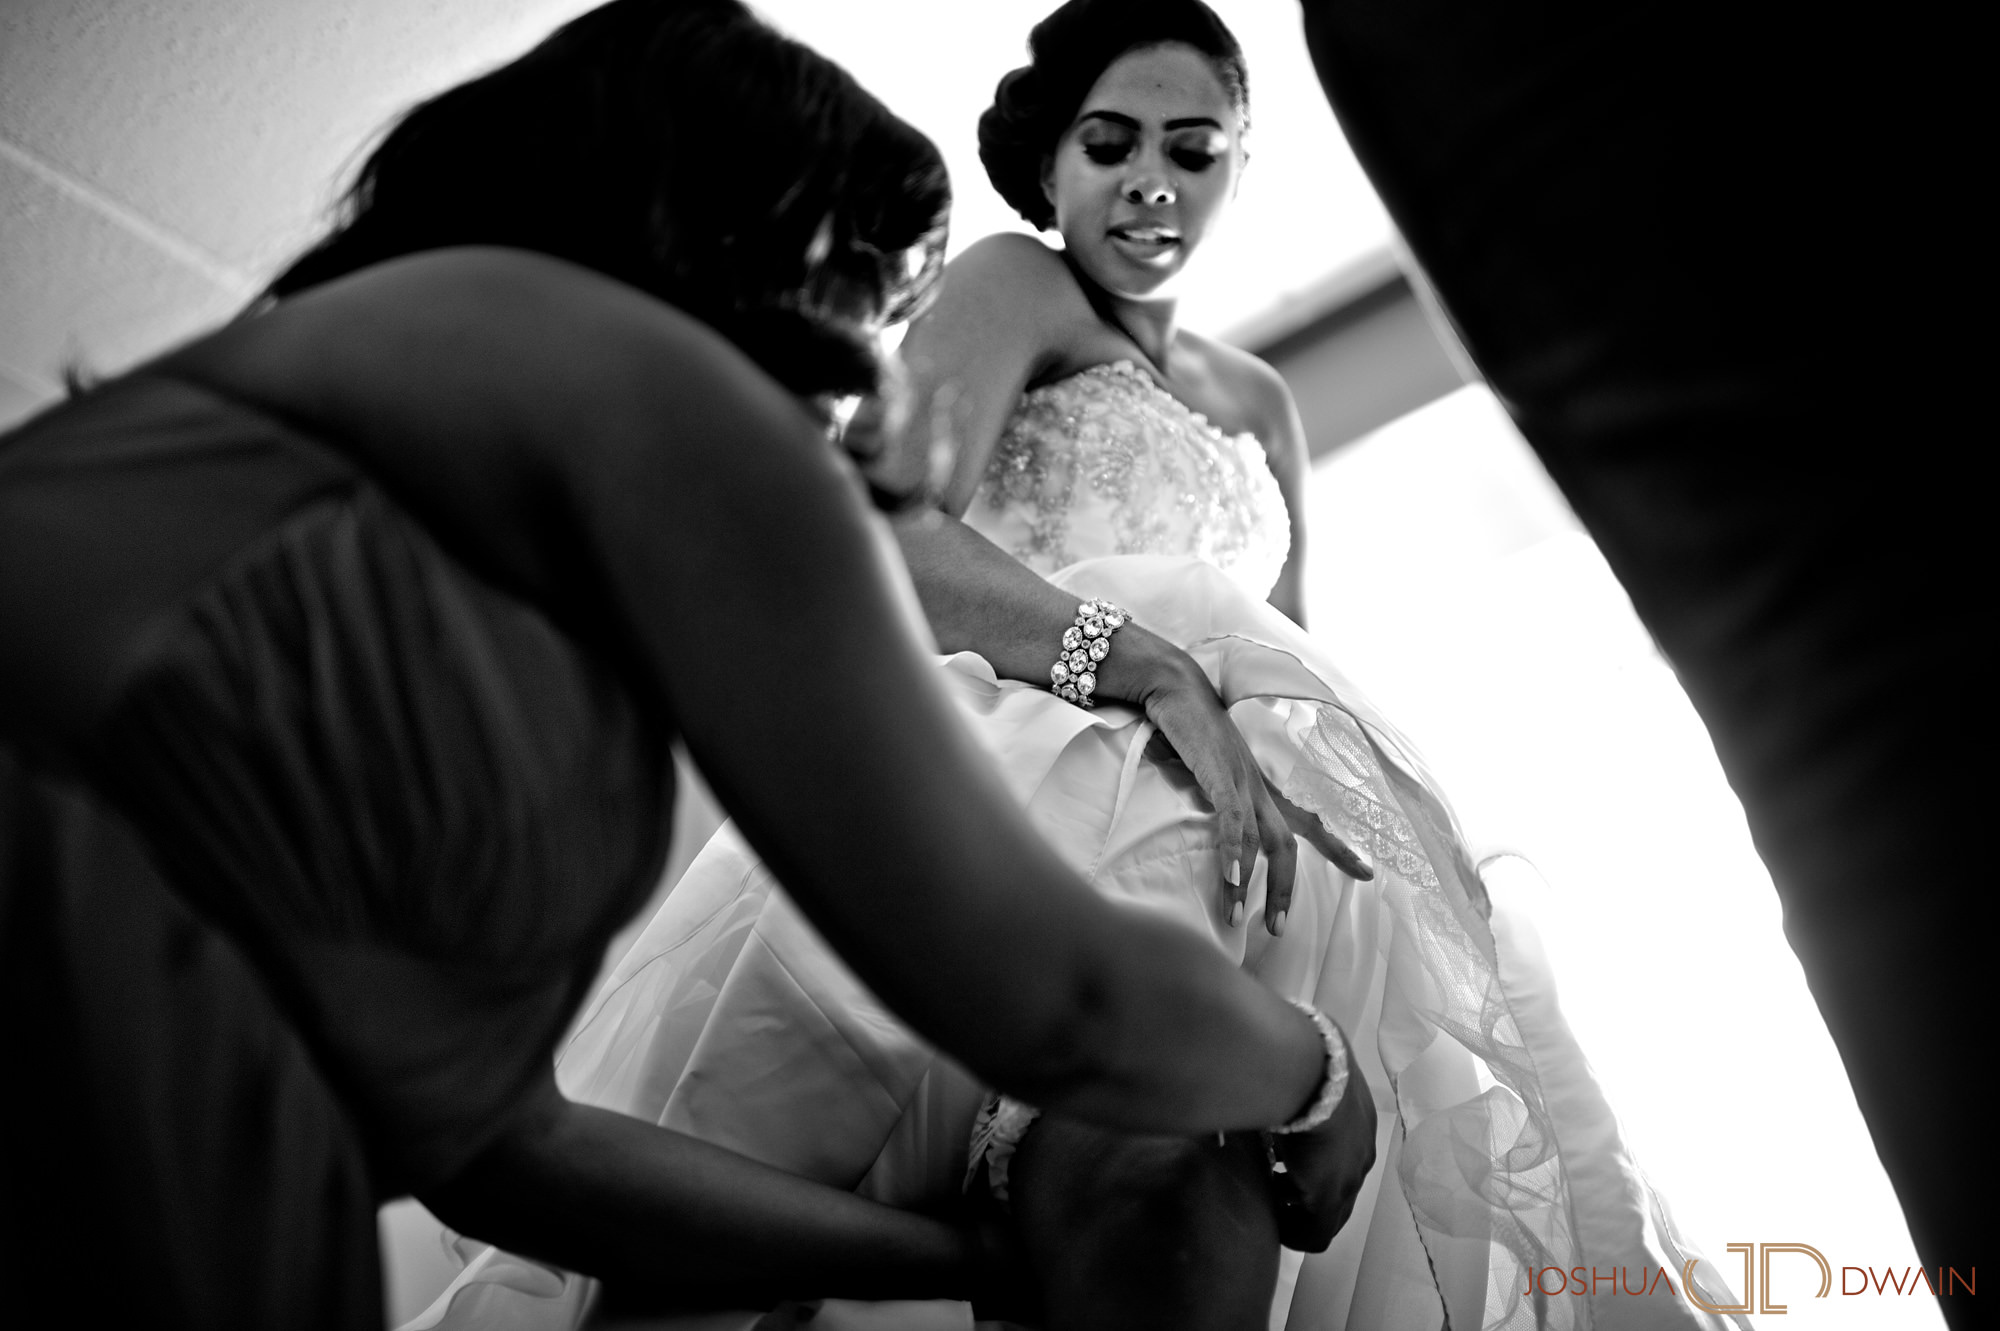 patricia-daniel-006-the-bourne-mansion-long-island-wedding-photographer-joshua-dwain-2012-07-08_pf_131